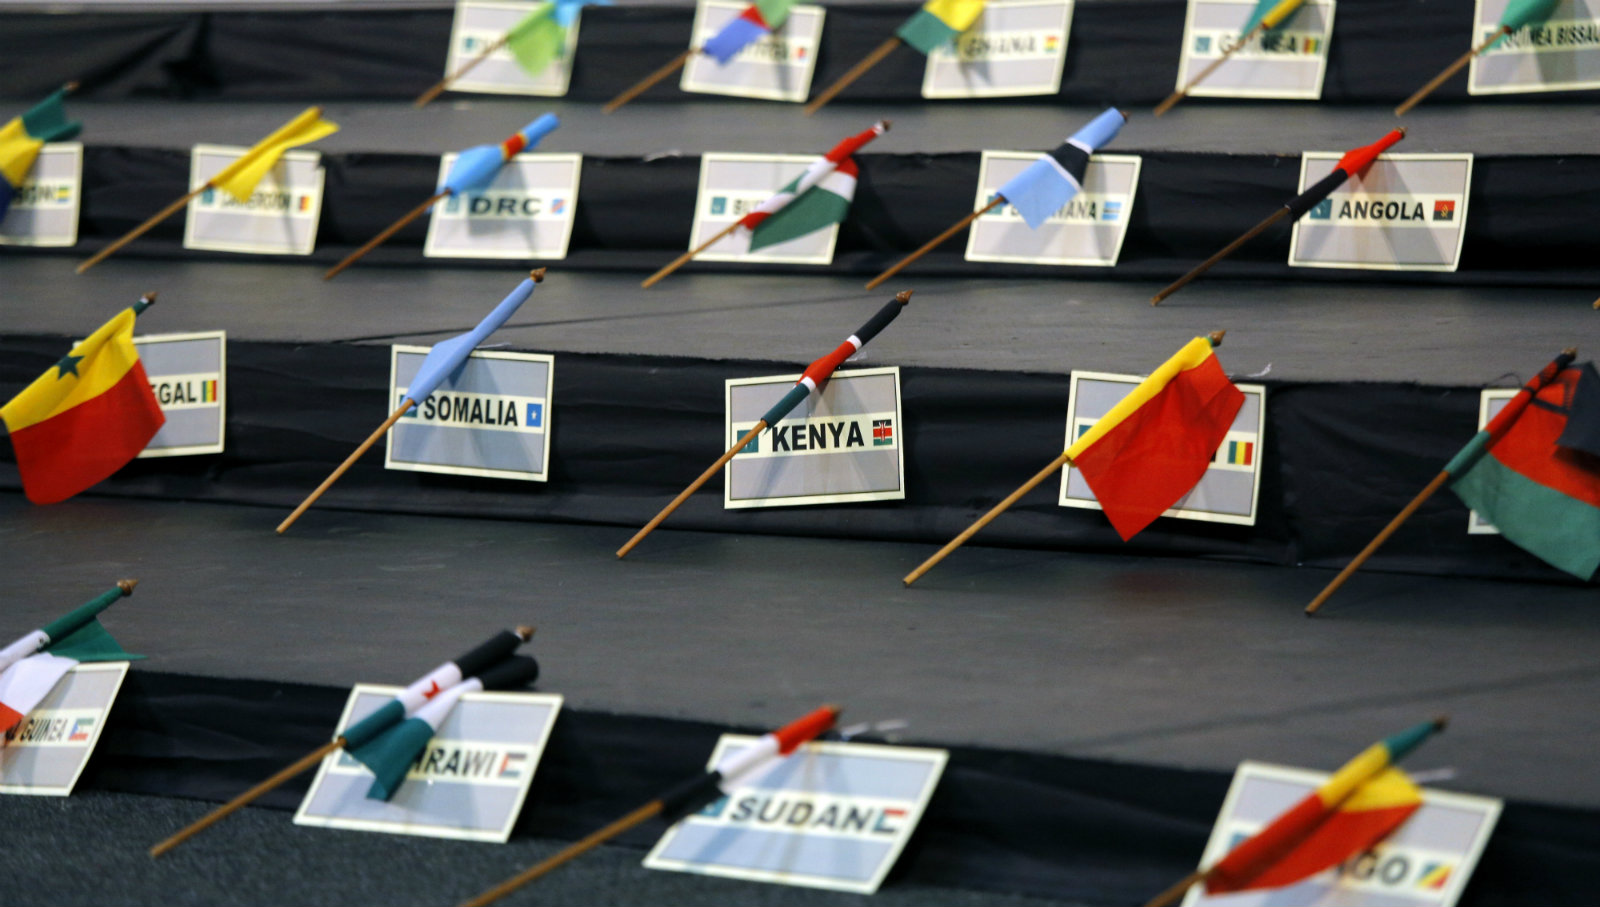 The flags and names of some of the African countries are seen prior to the 'Family photograph' taken at the AU Summit in Sandton, Johannesburg, South Africa, 14 June 2015. The African Union Summit sees African heads of state gather in Sandton City.